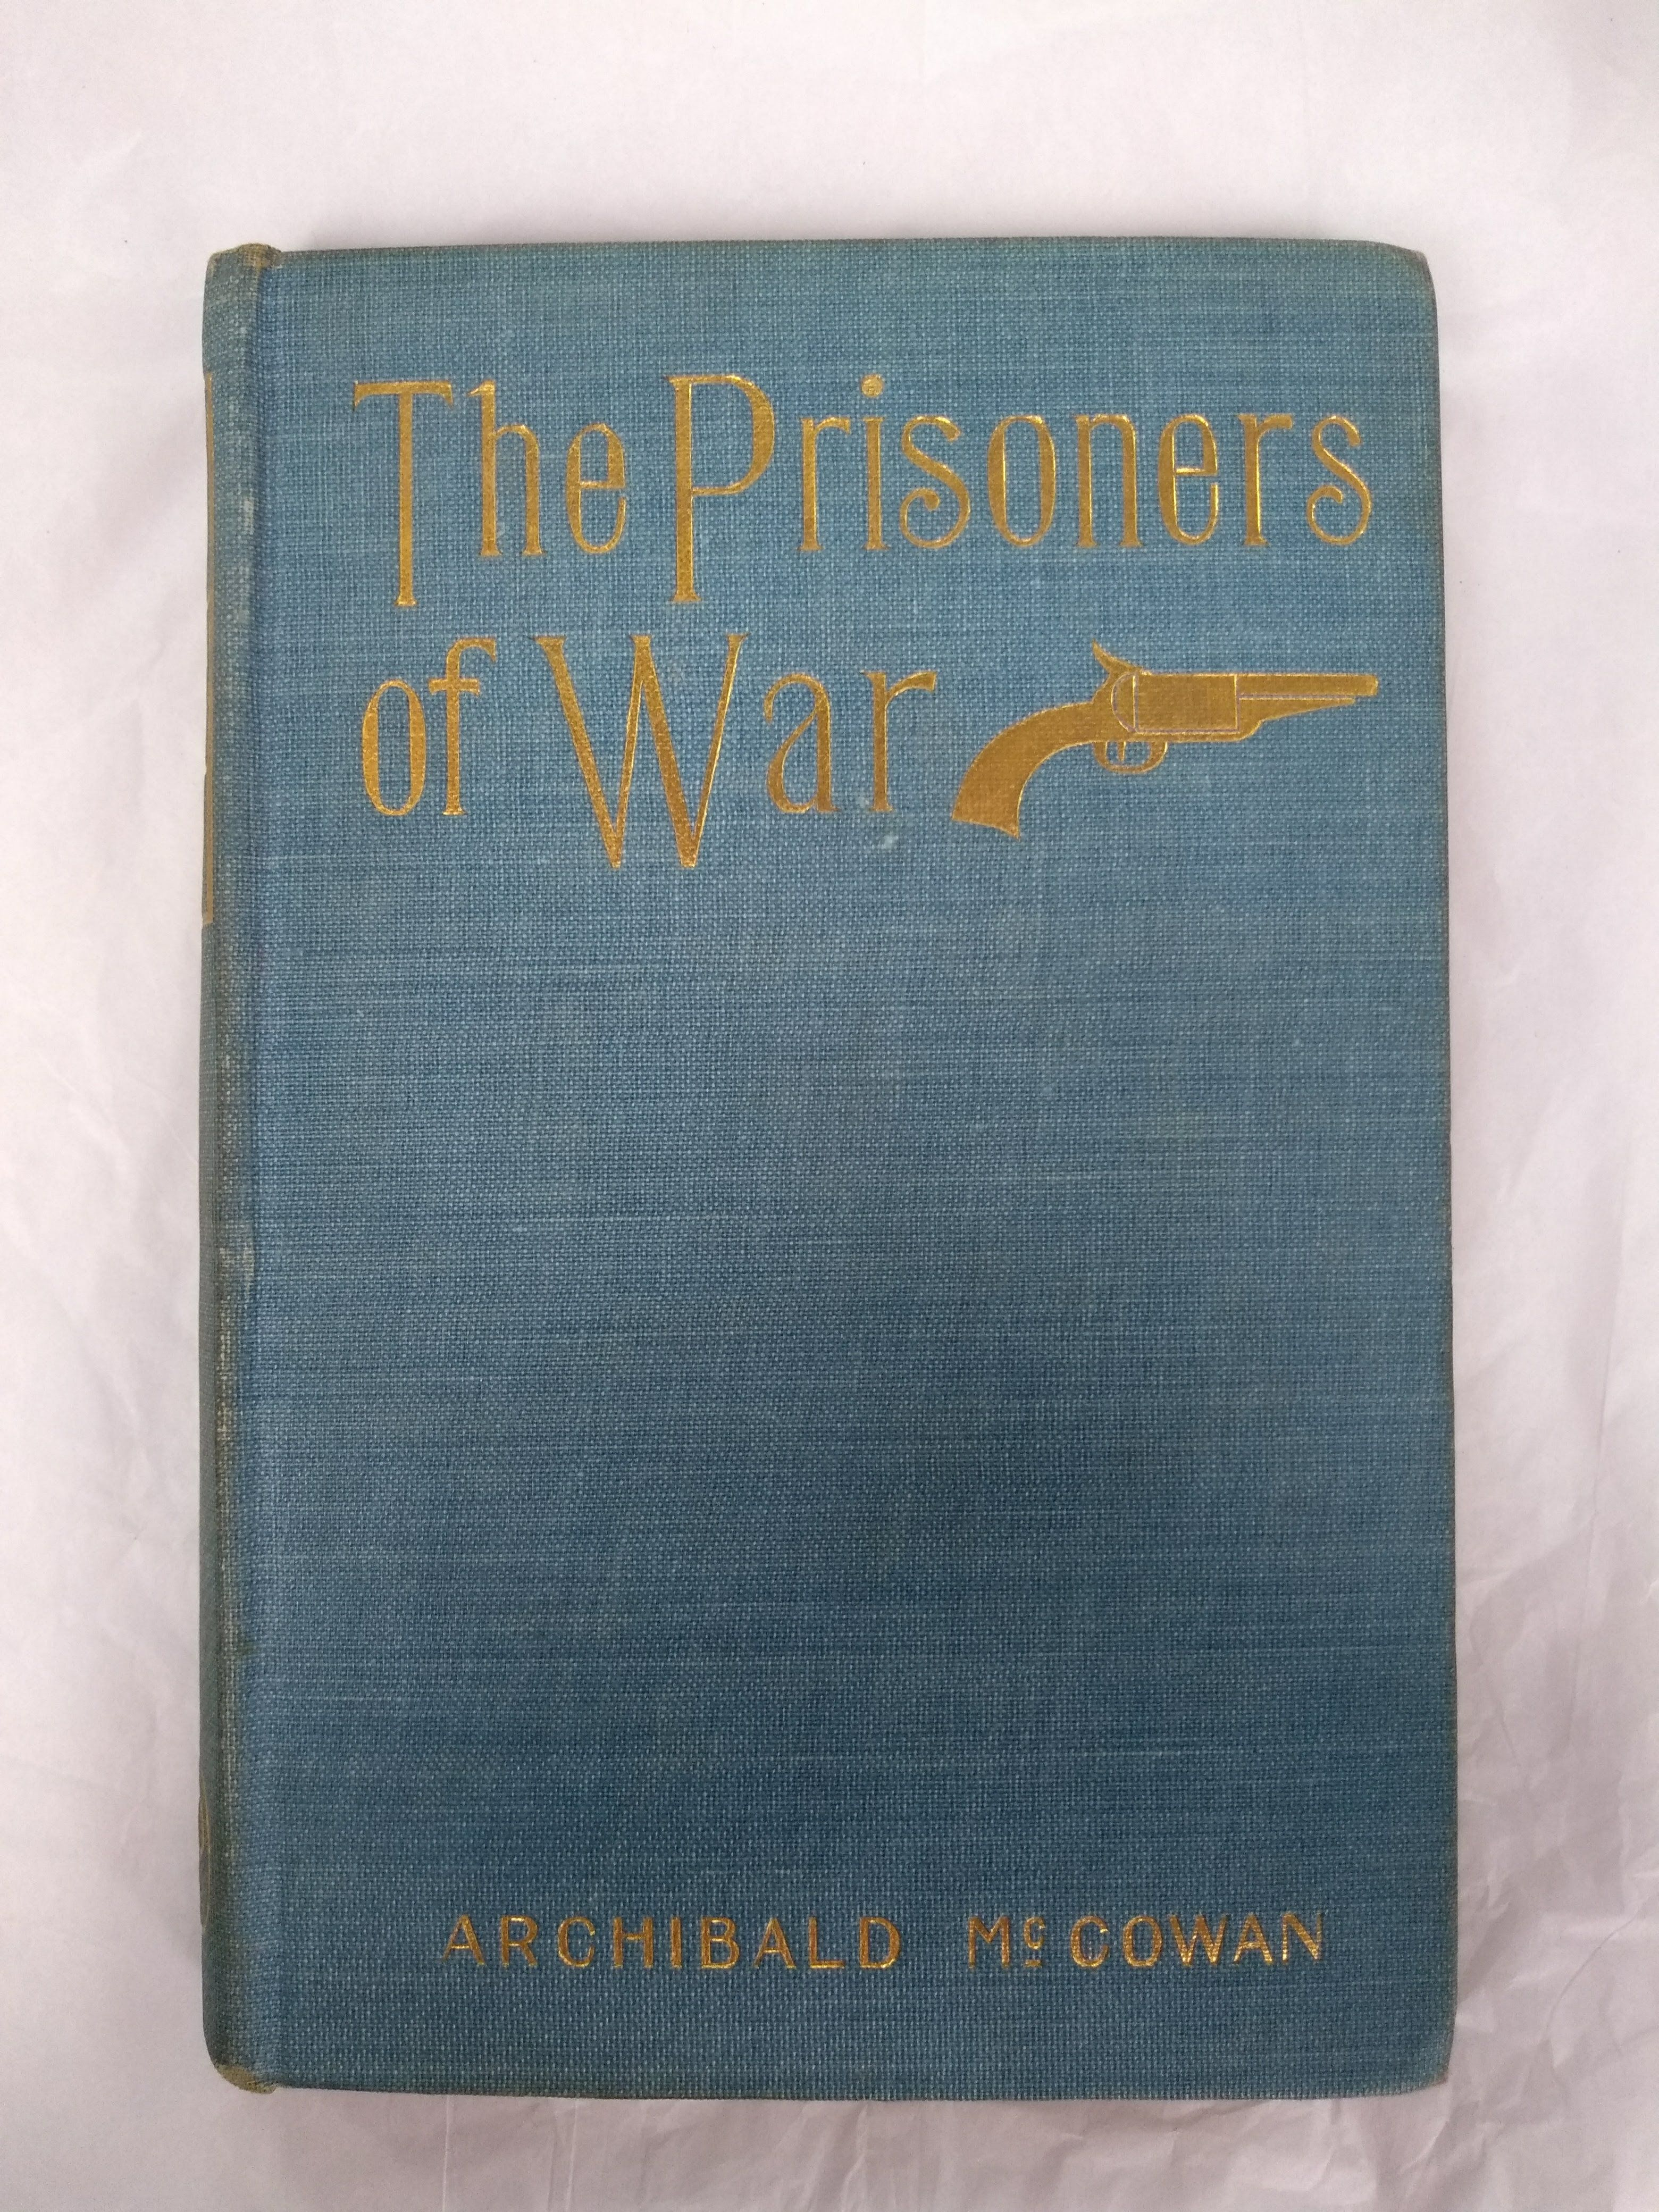 The prisoners of war: A reminiscence of the rebellion (Travels in the Confederate states), McCowan, Archibald